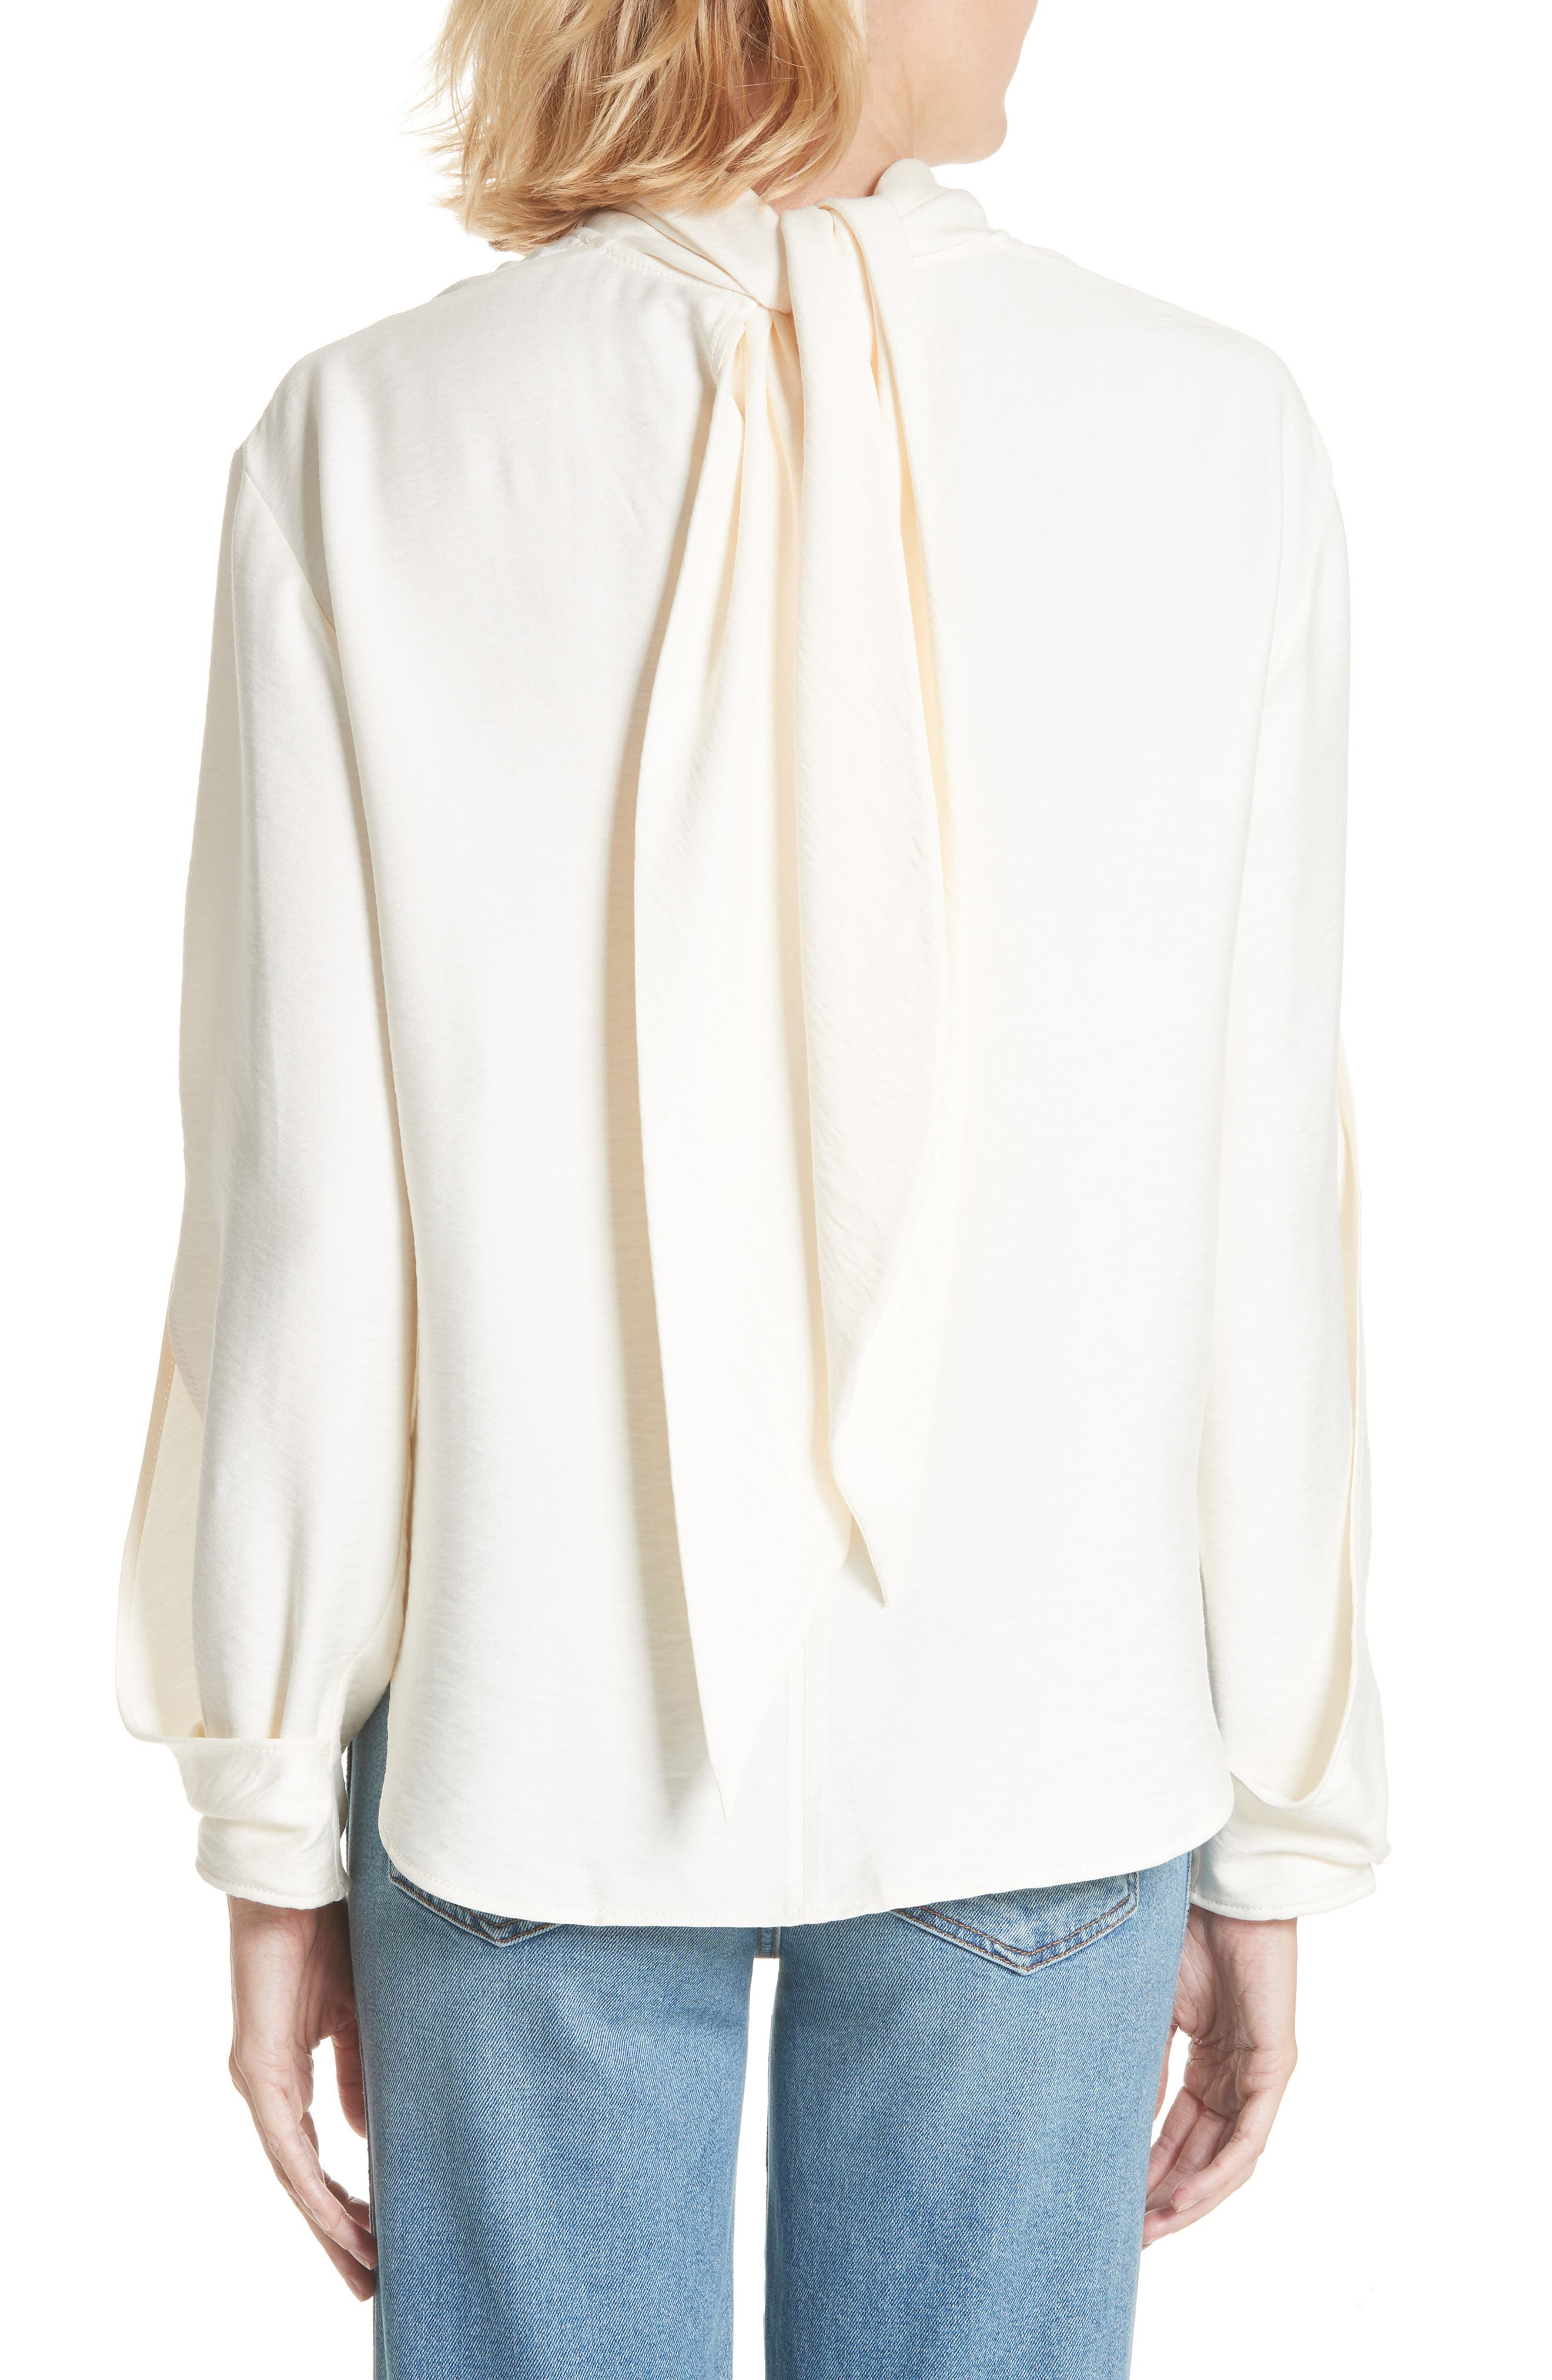 Jessie High Neck Blouse,                             Alternate thumbnail 2, color,                             Rayon Ivory